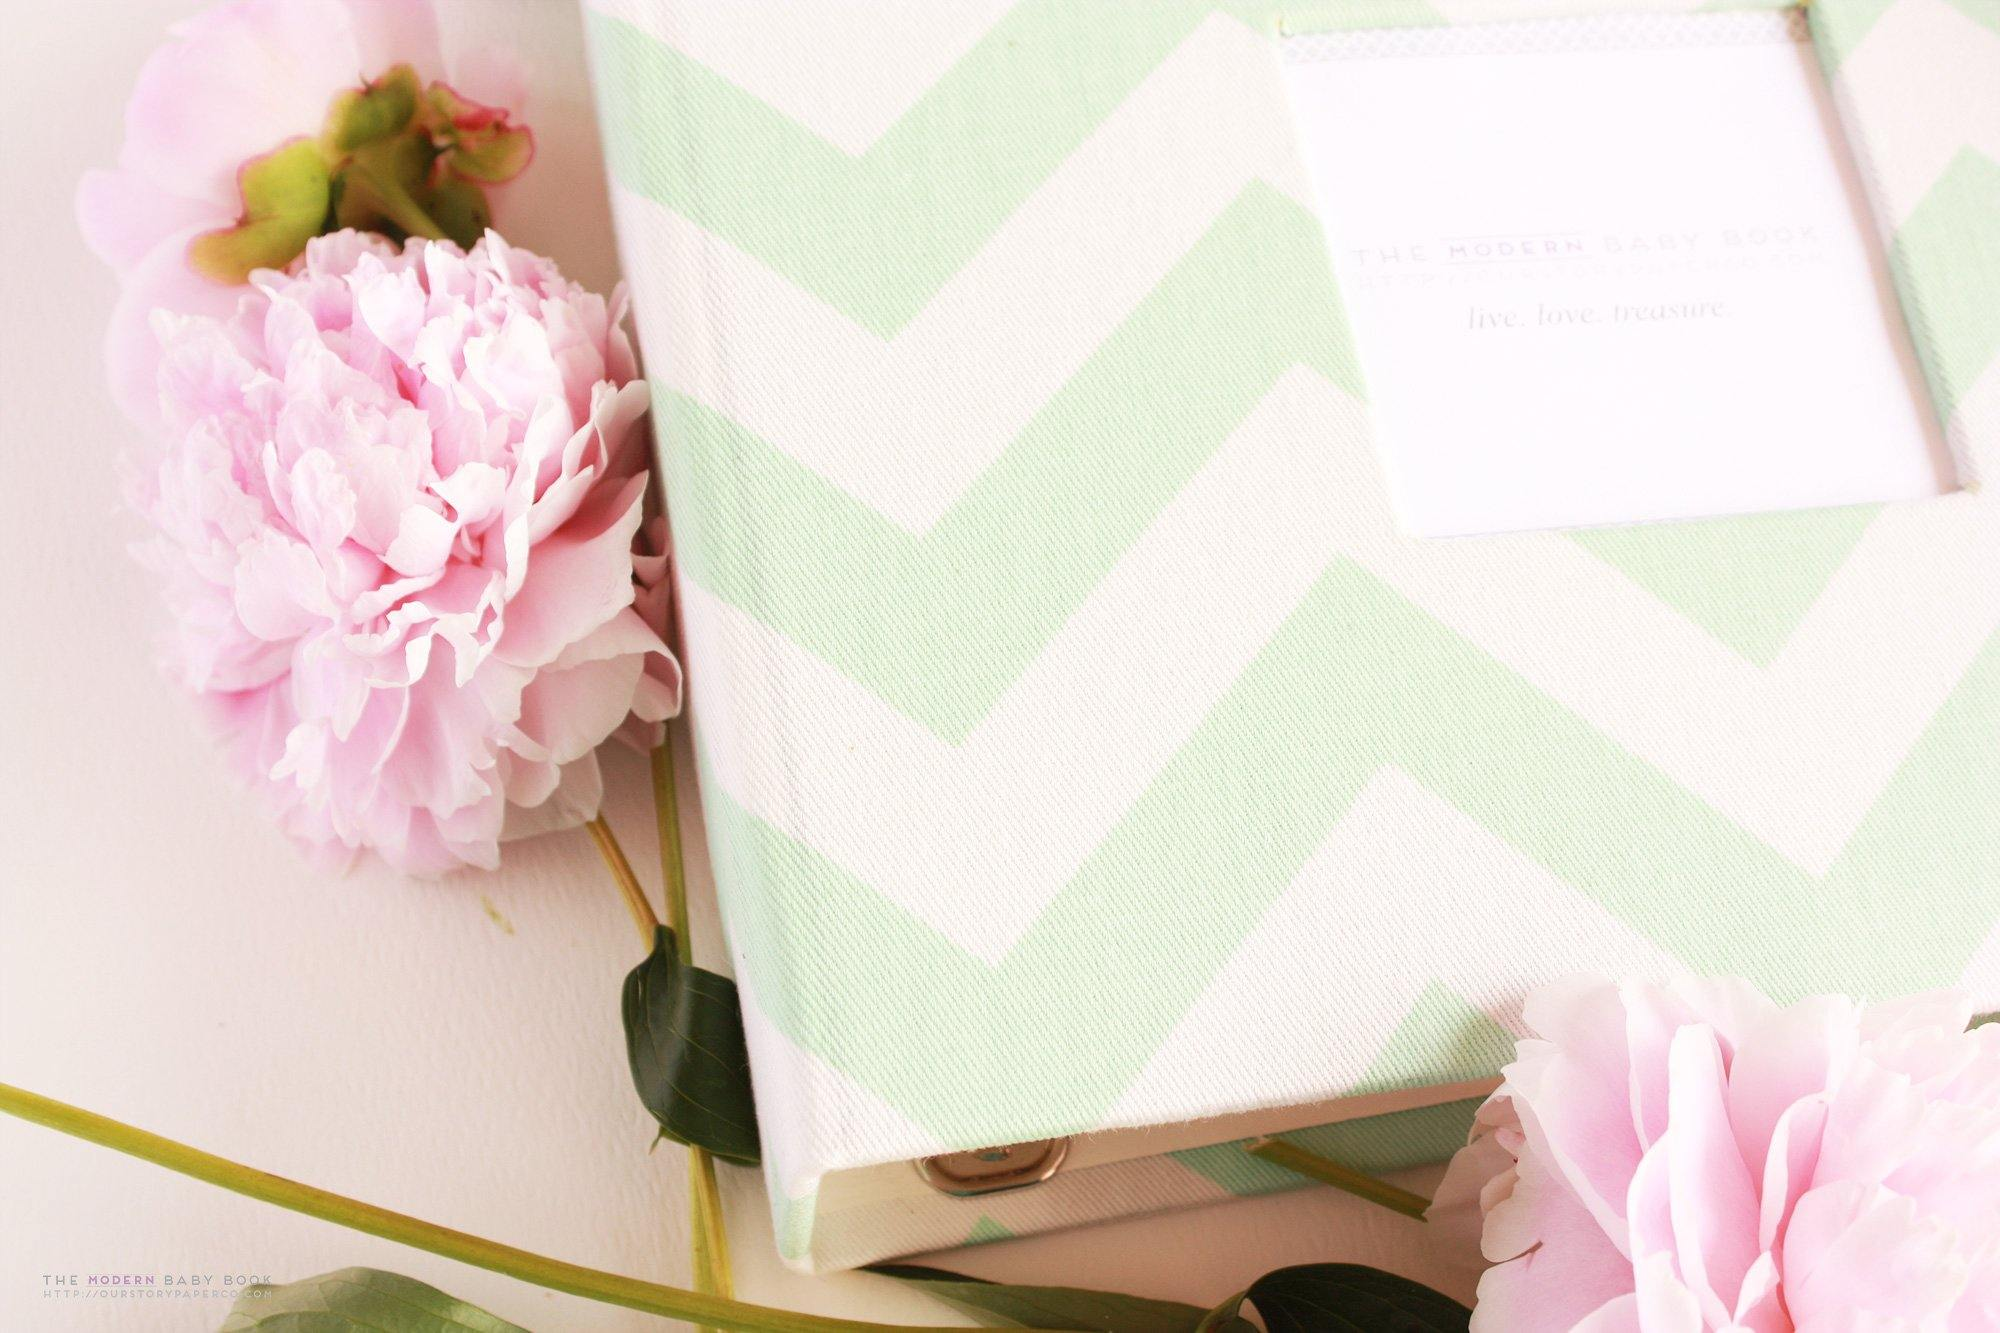 Mint Green Chevron Modern Baby Book - Our Story Paper Co.